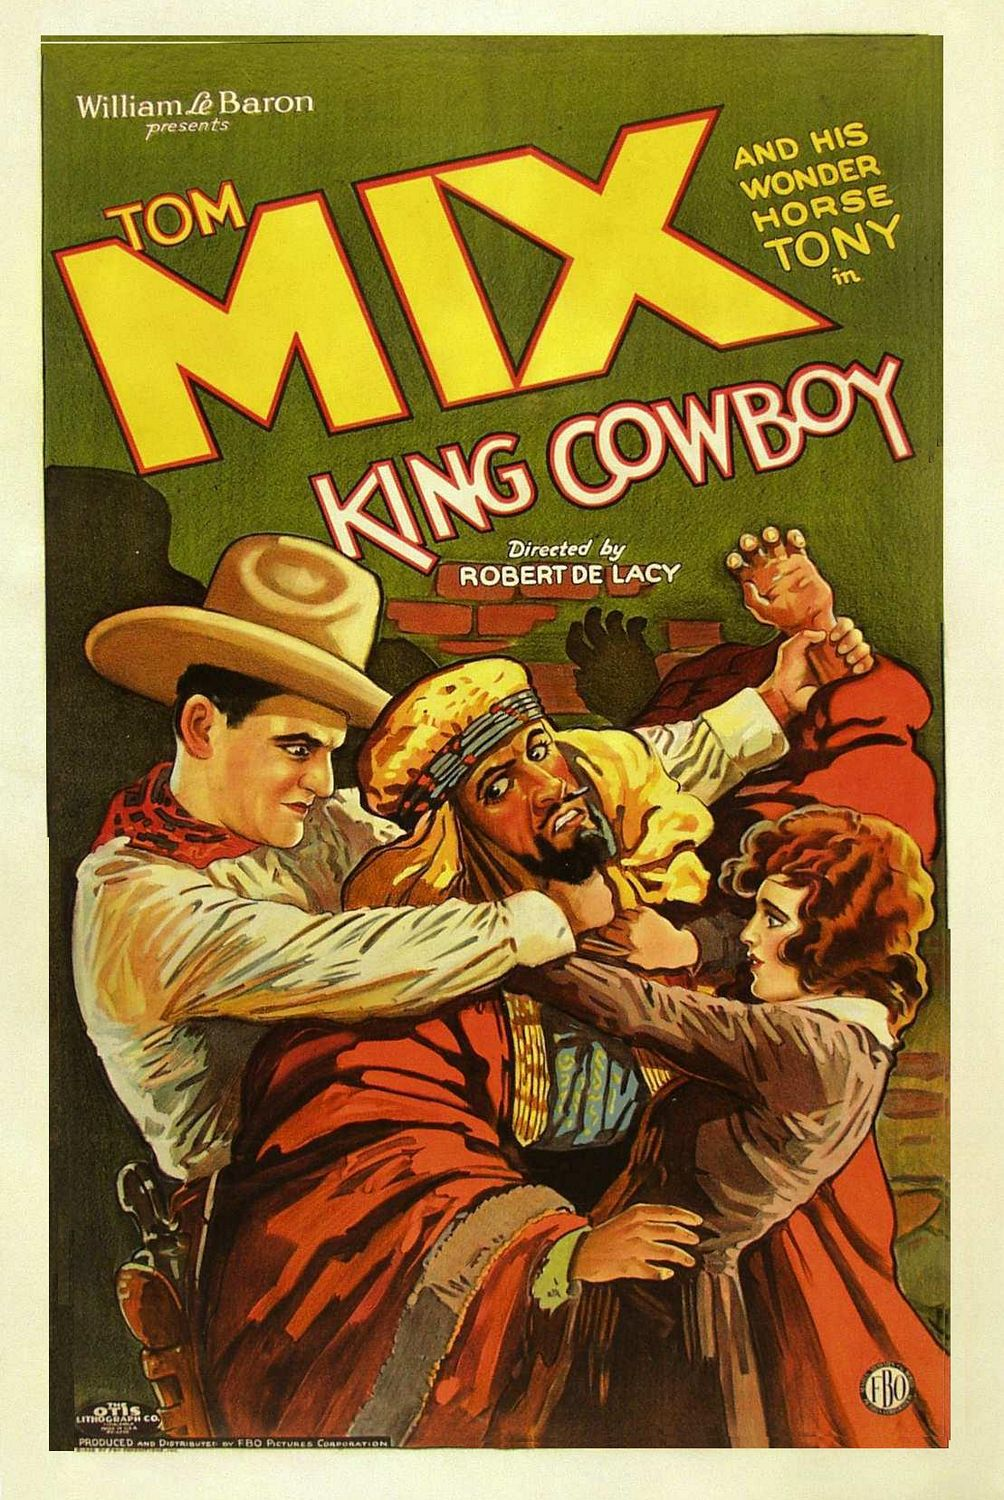 Old Film Wester - Tom Mix and this wonder Horse Tony in King Cowboy directed by Robert De Lacy